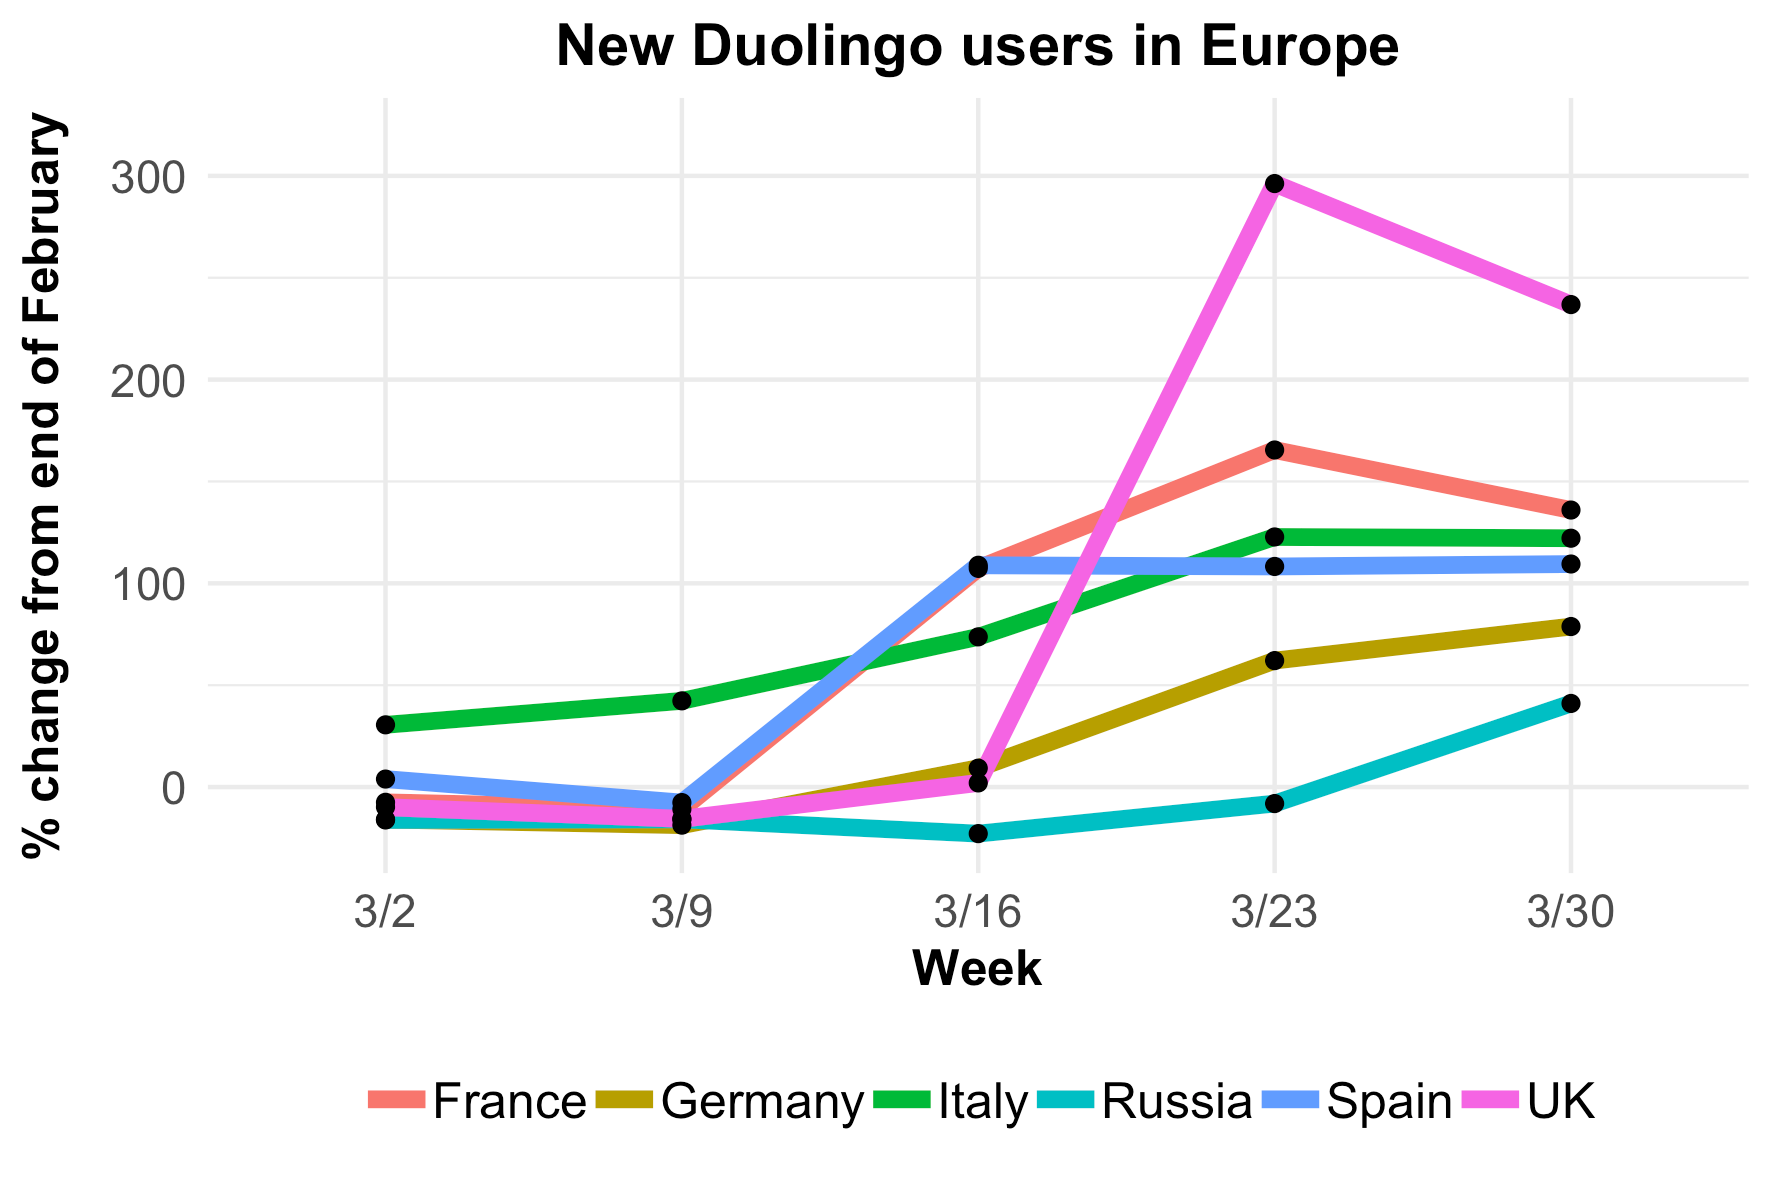 fig3-new-user-growth-europe